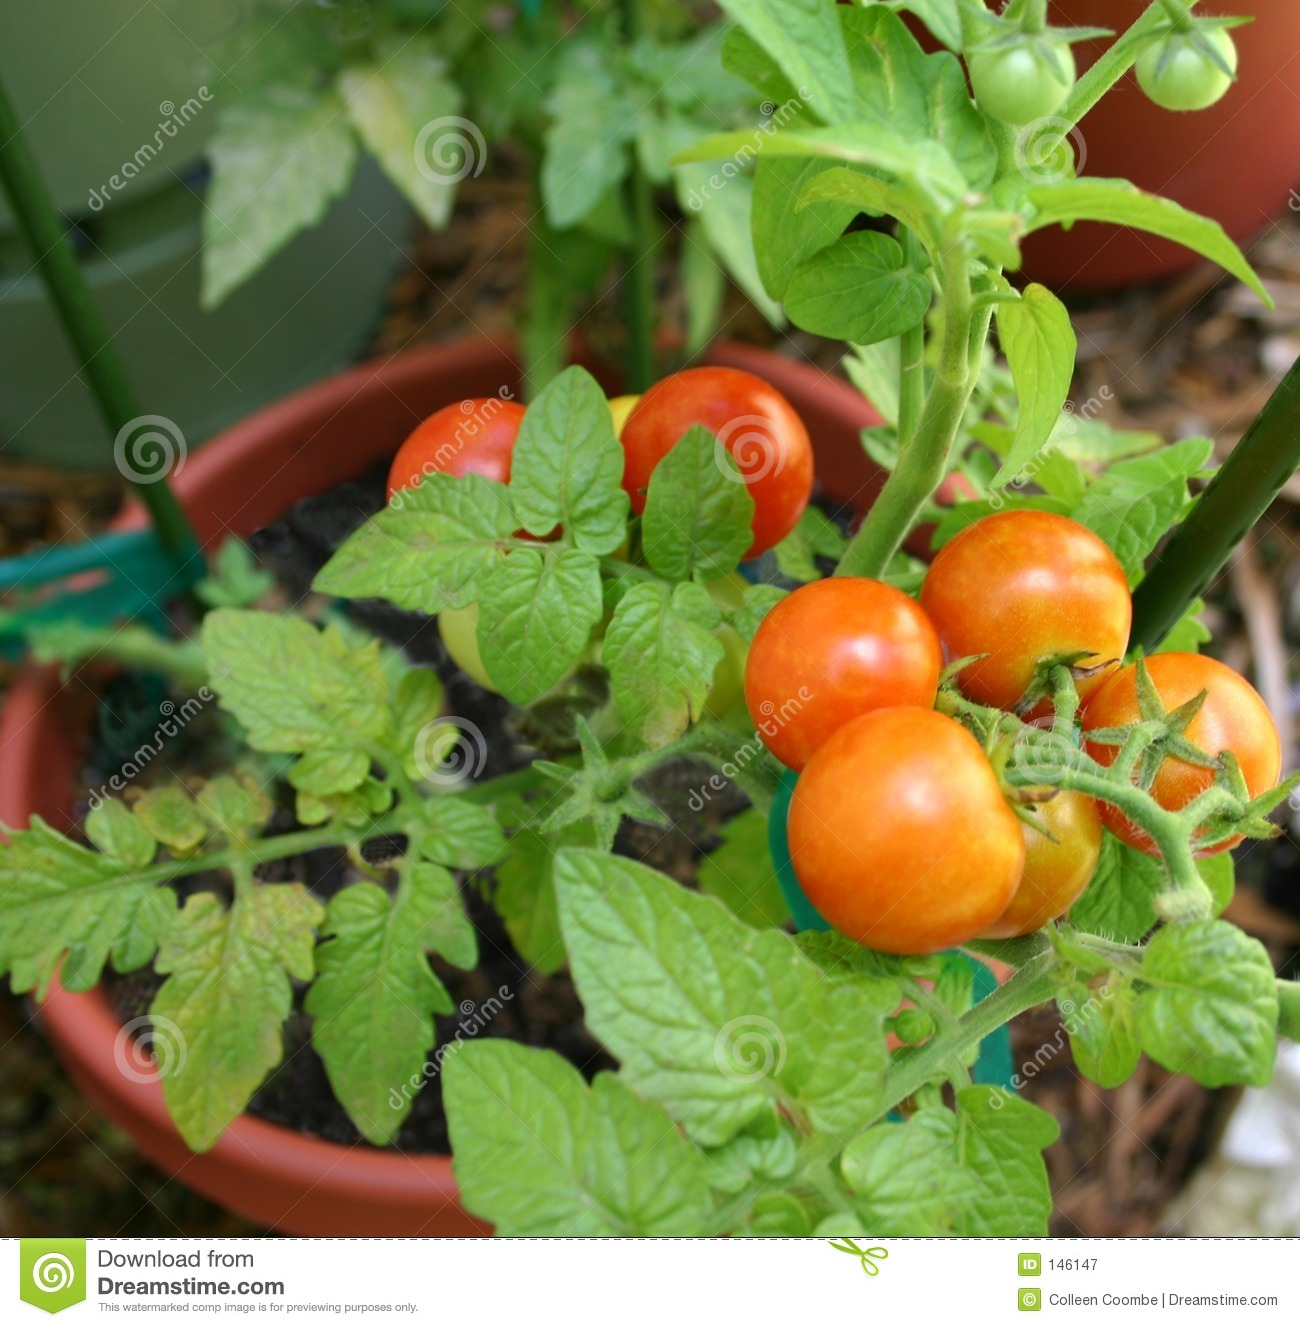 cherry tomato plant stock image image of tomato small 146147. Black Bedroom Furniture Sets. Home Design Ideas